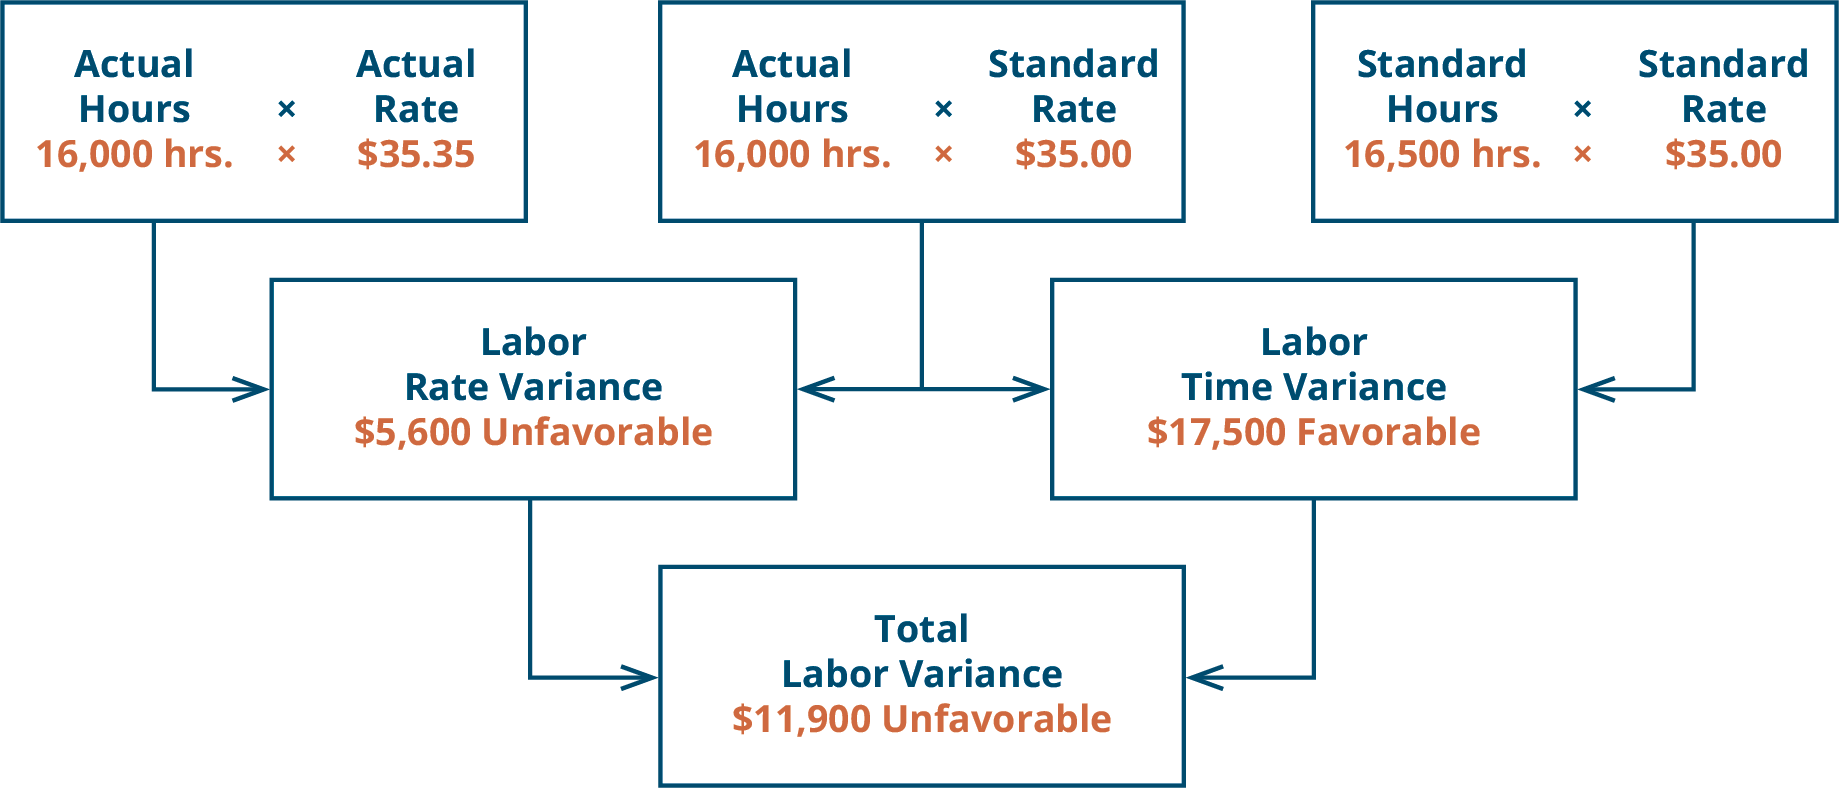 There are three top row boxes. Two, Actual Hours (16,000) times Actual Rate (💲35.35) and Actual Hours (16,000) times Standard Rate (💲35.00) combine to point to a Second row box: Direct Labor Rate Variance 💲5,600 U. Two top row boxes: Actual Hours (16,000) times Standard Rate (💲35.00) and Standard Hours (16,500) times Standard Rate (💲35.00) combine to point to Second row box: Direct Labor Time Variance 💲17,500 F. Notice the middle top row box is used for both of the variances. Second row boxes: Direct Labor Rate Variance 💲5,650 U and Direct Labor Time Variance 💲17,500 F combine to point to bottom row box: Total Direct Labor Variance 💲11,900 U.